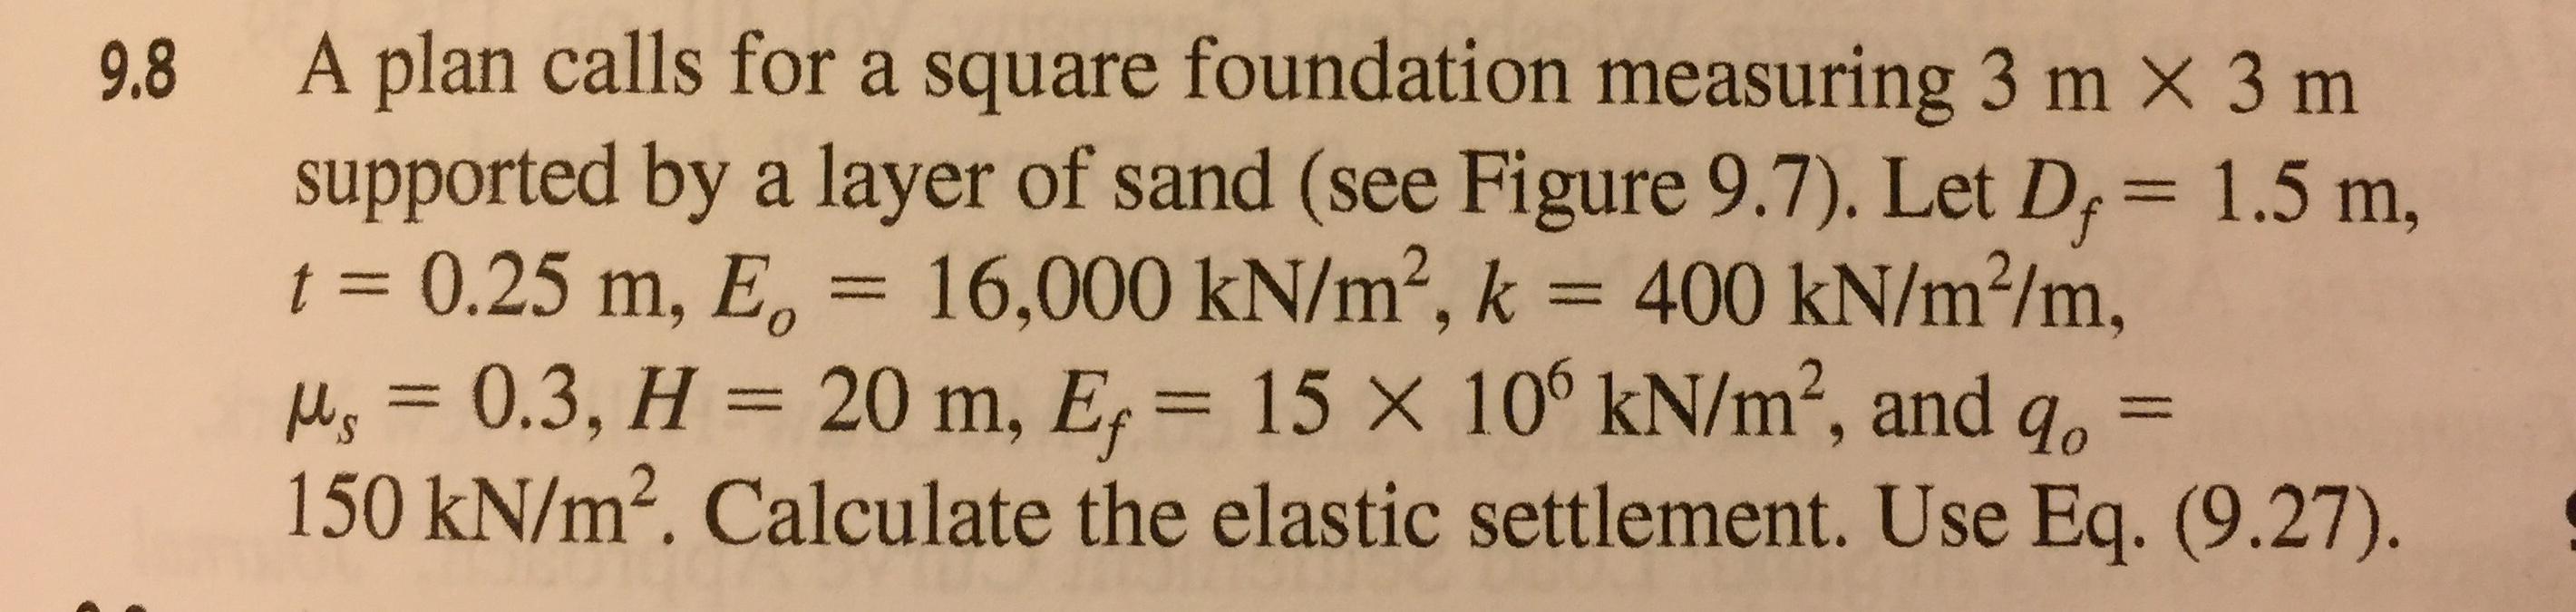 9.8 A plan calls for a square foundation measuring 3 m x 3 m supported by a layer of sand (see Figure 9.7). Let D, 1.5 m, t 0.25 m, E 16,000 kN/m2, k 400 kN/m2/m, , 0.3, H 20 m, E 15 X 10° kN/m2, and go- 150 kN/m2. Calculate the elastic settlement. Use Eq. (9.27).